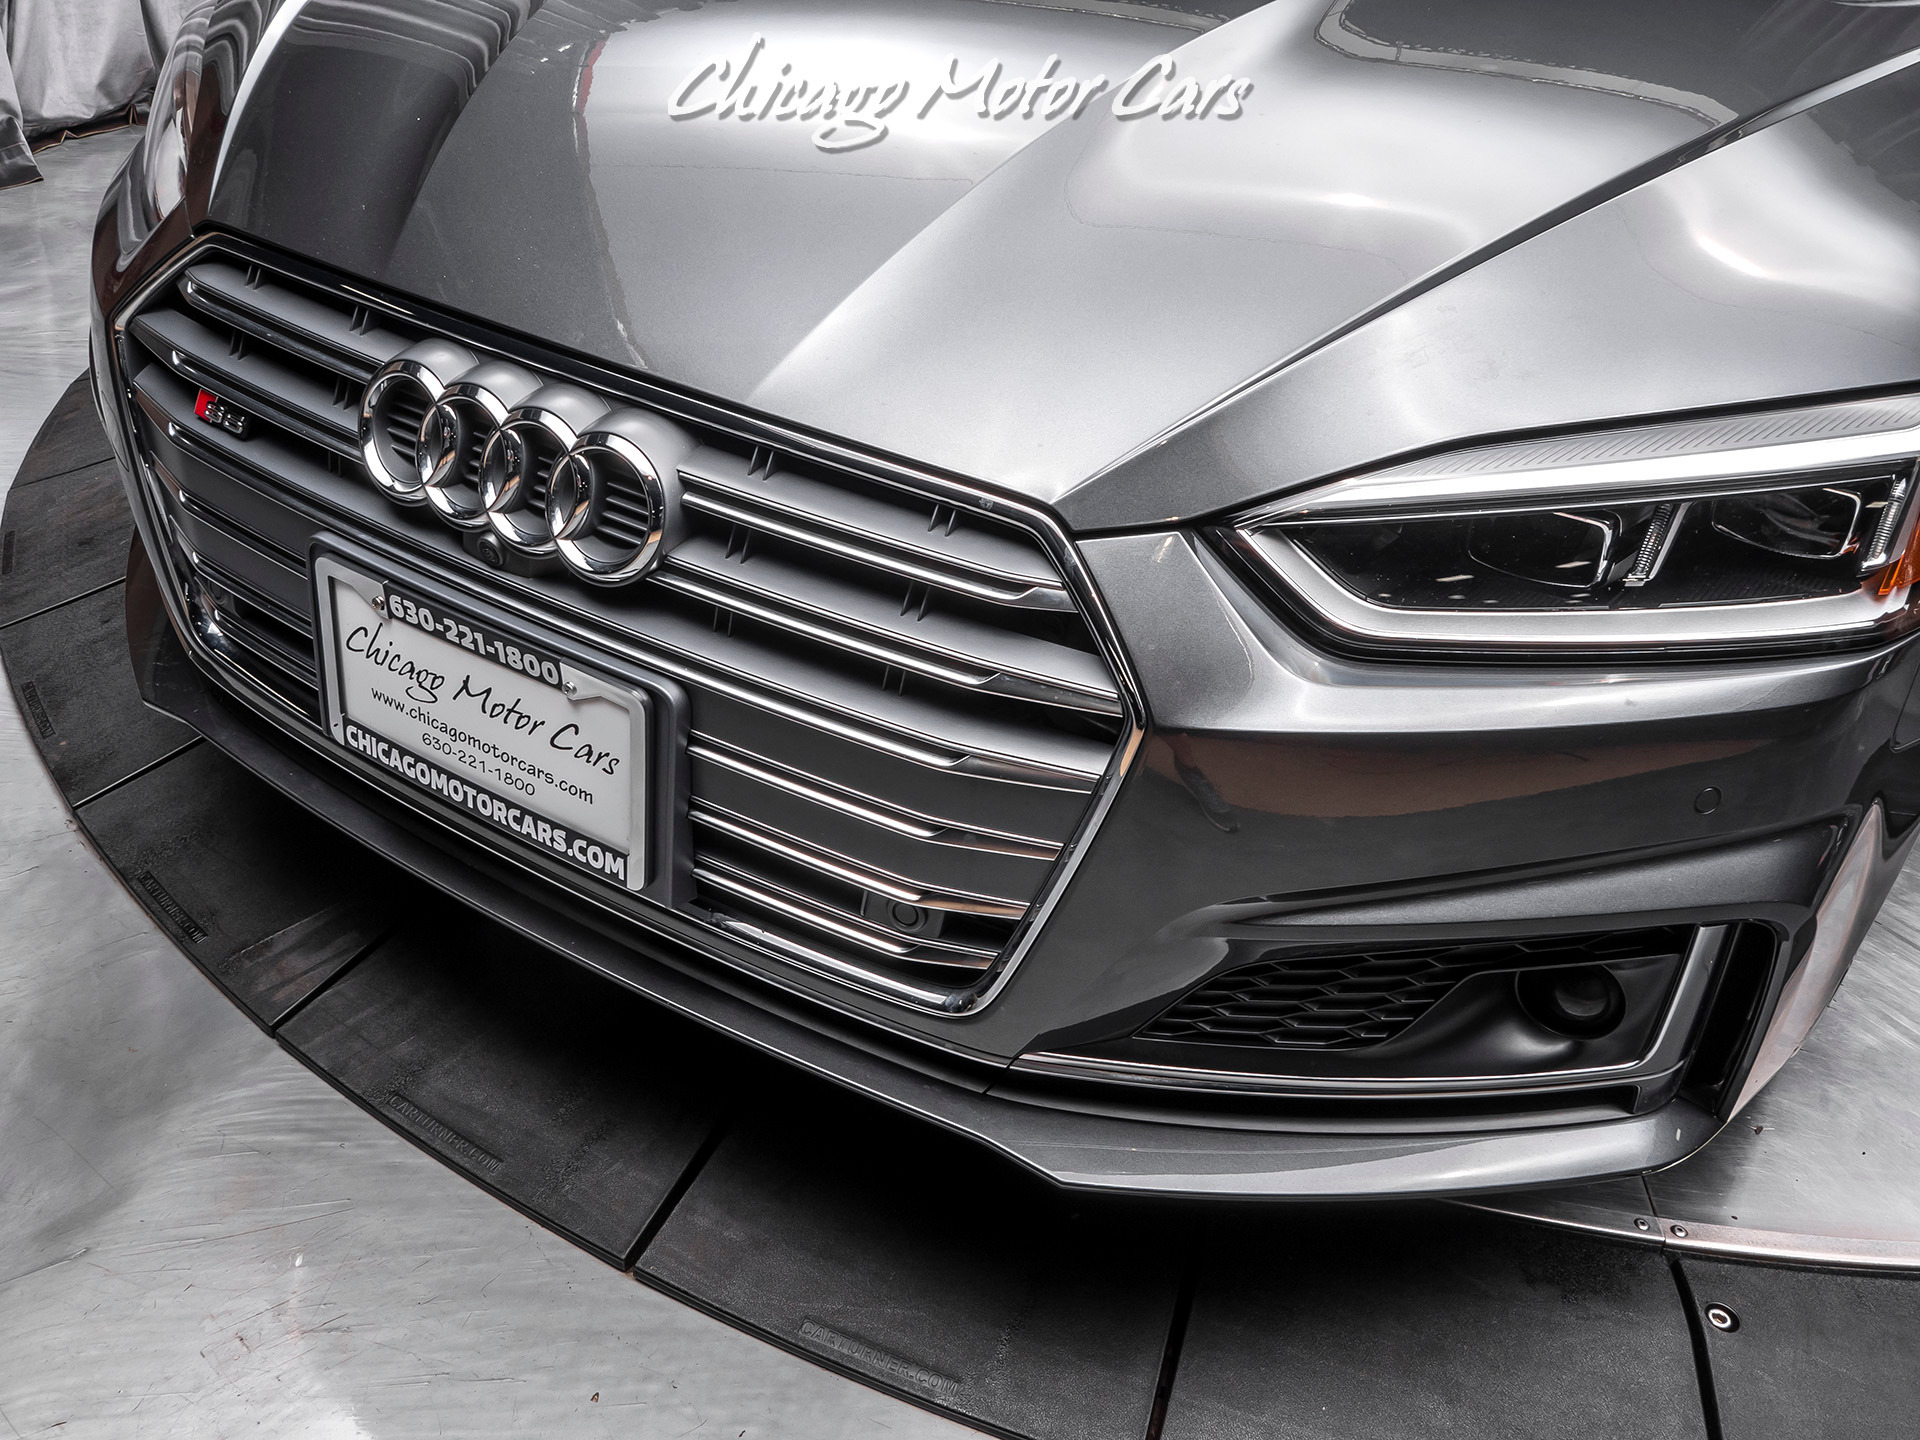 Used 2018 Audi S5 Coupe Prestige For Sale Special Pricing Chicago Motor Cars Stock 15955